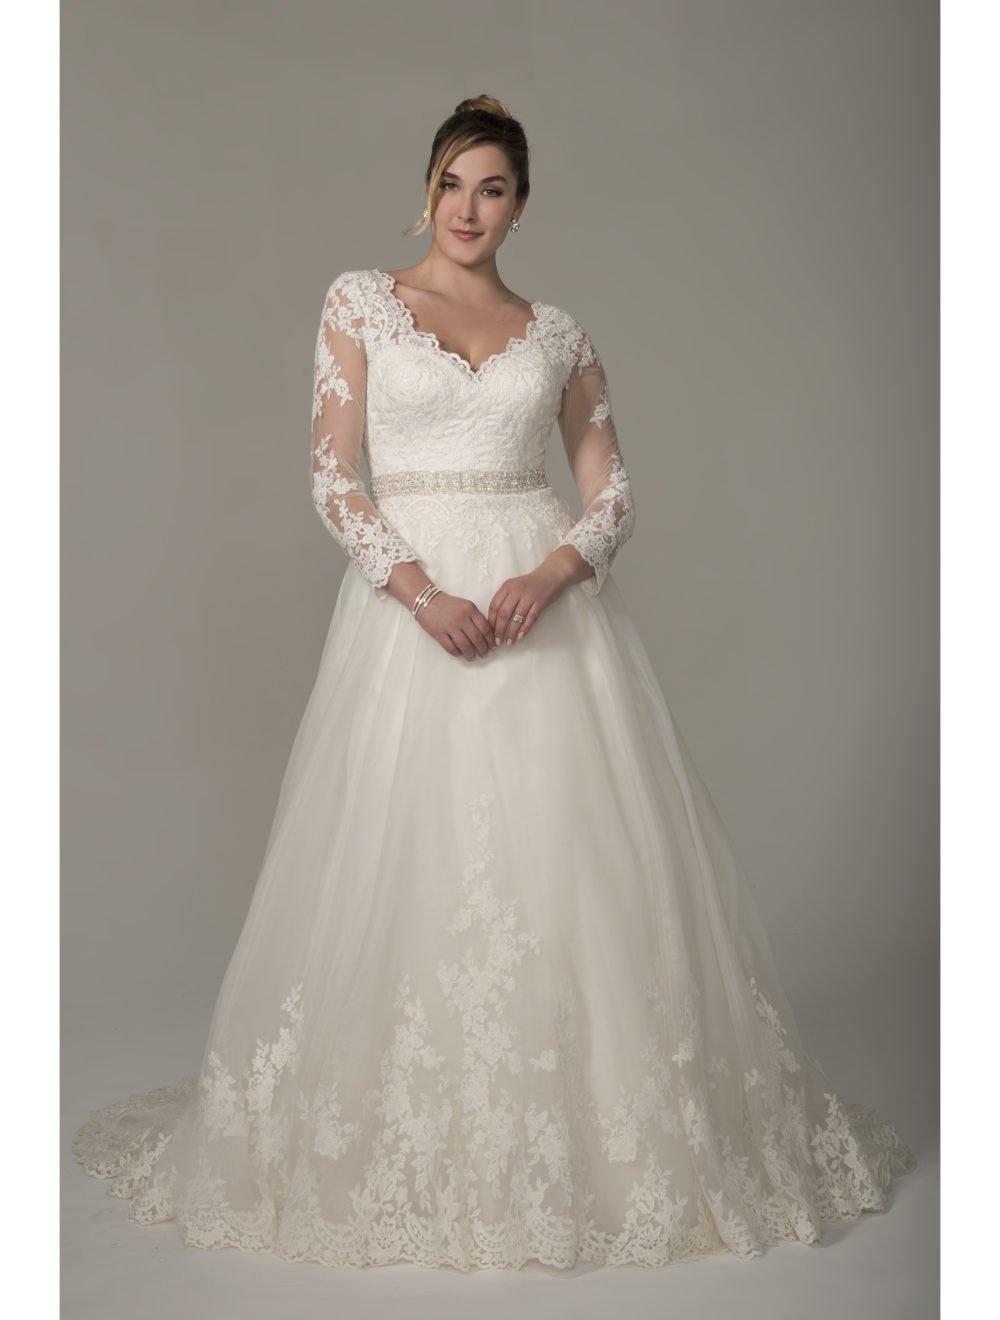 Buy 2017 plus size wedding dresses with for Wedding dresses with sleeves 2017